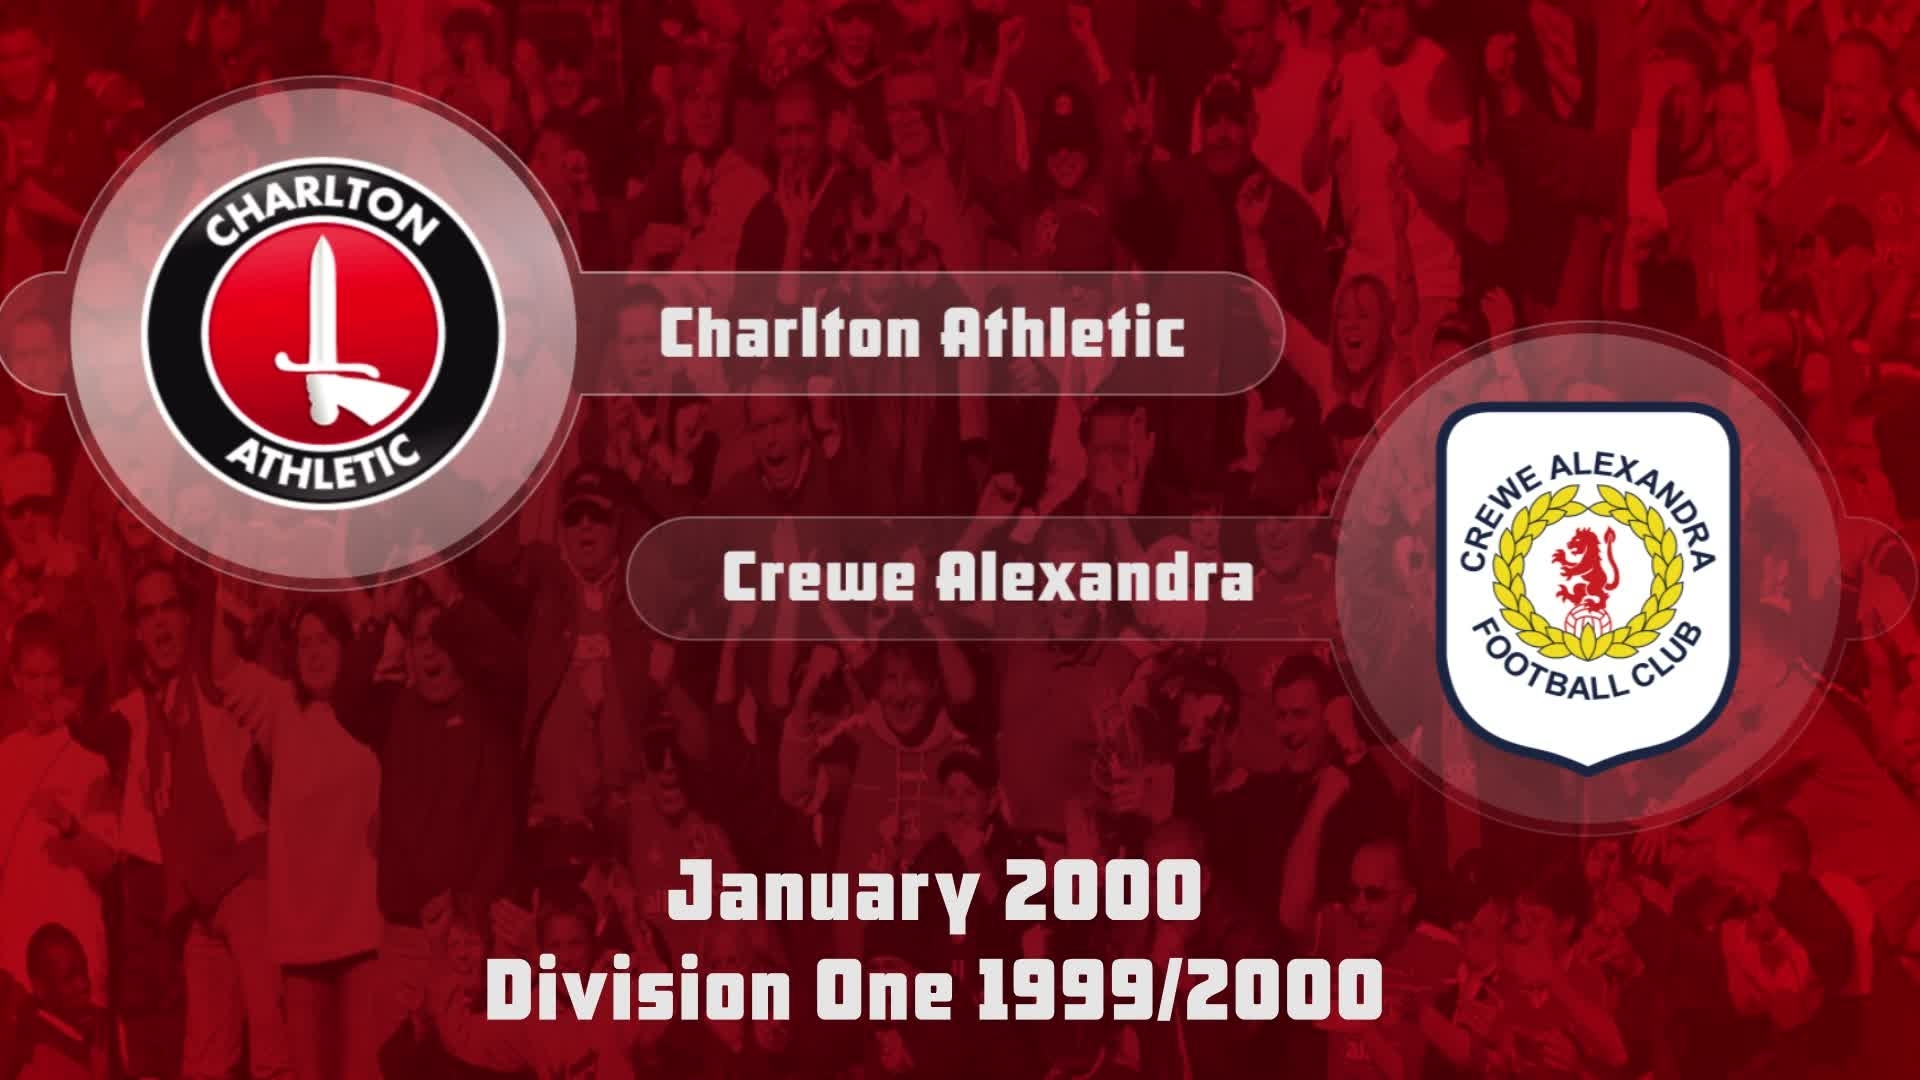 31 HIGHLIGHTS | Charlton 1 Crewe 0 (Jan 2000)